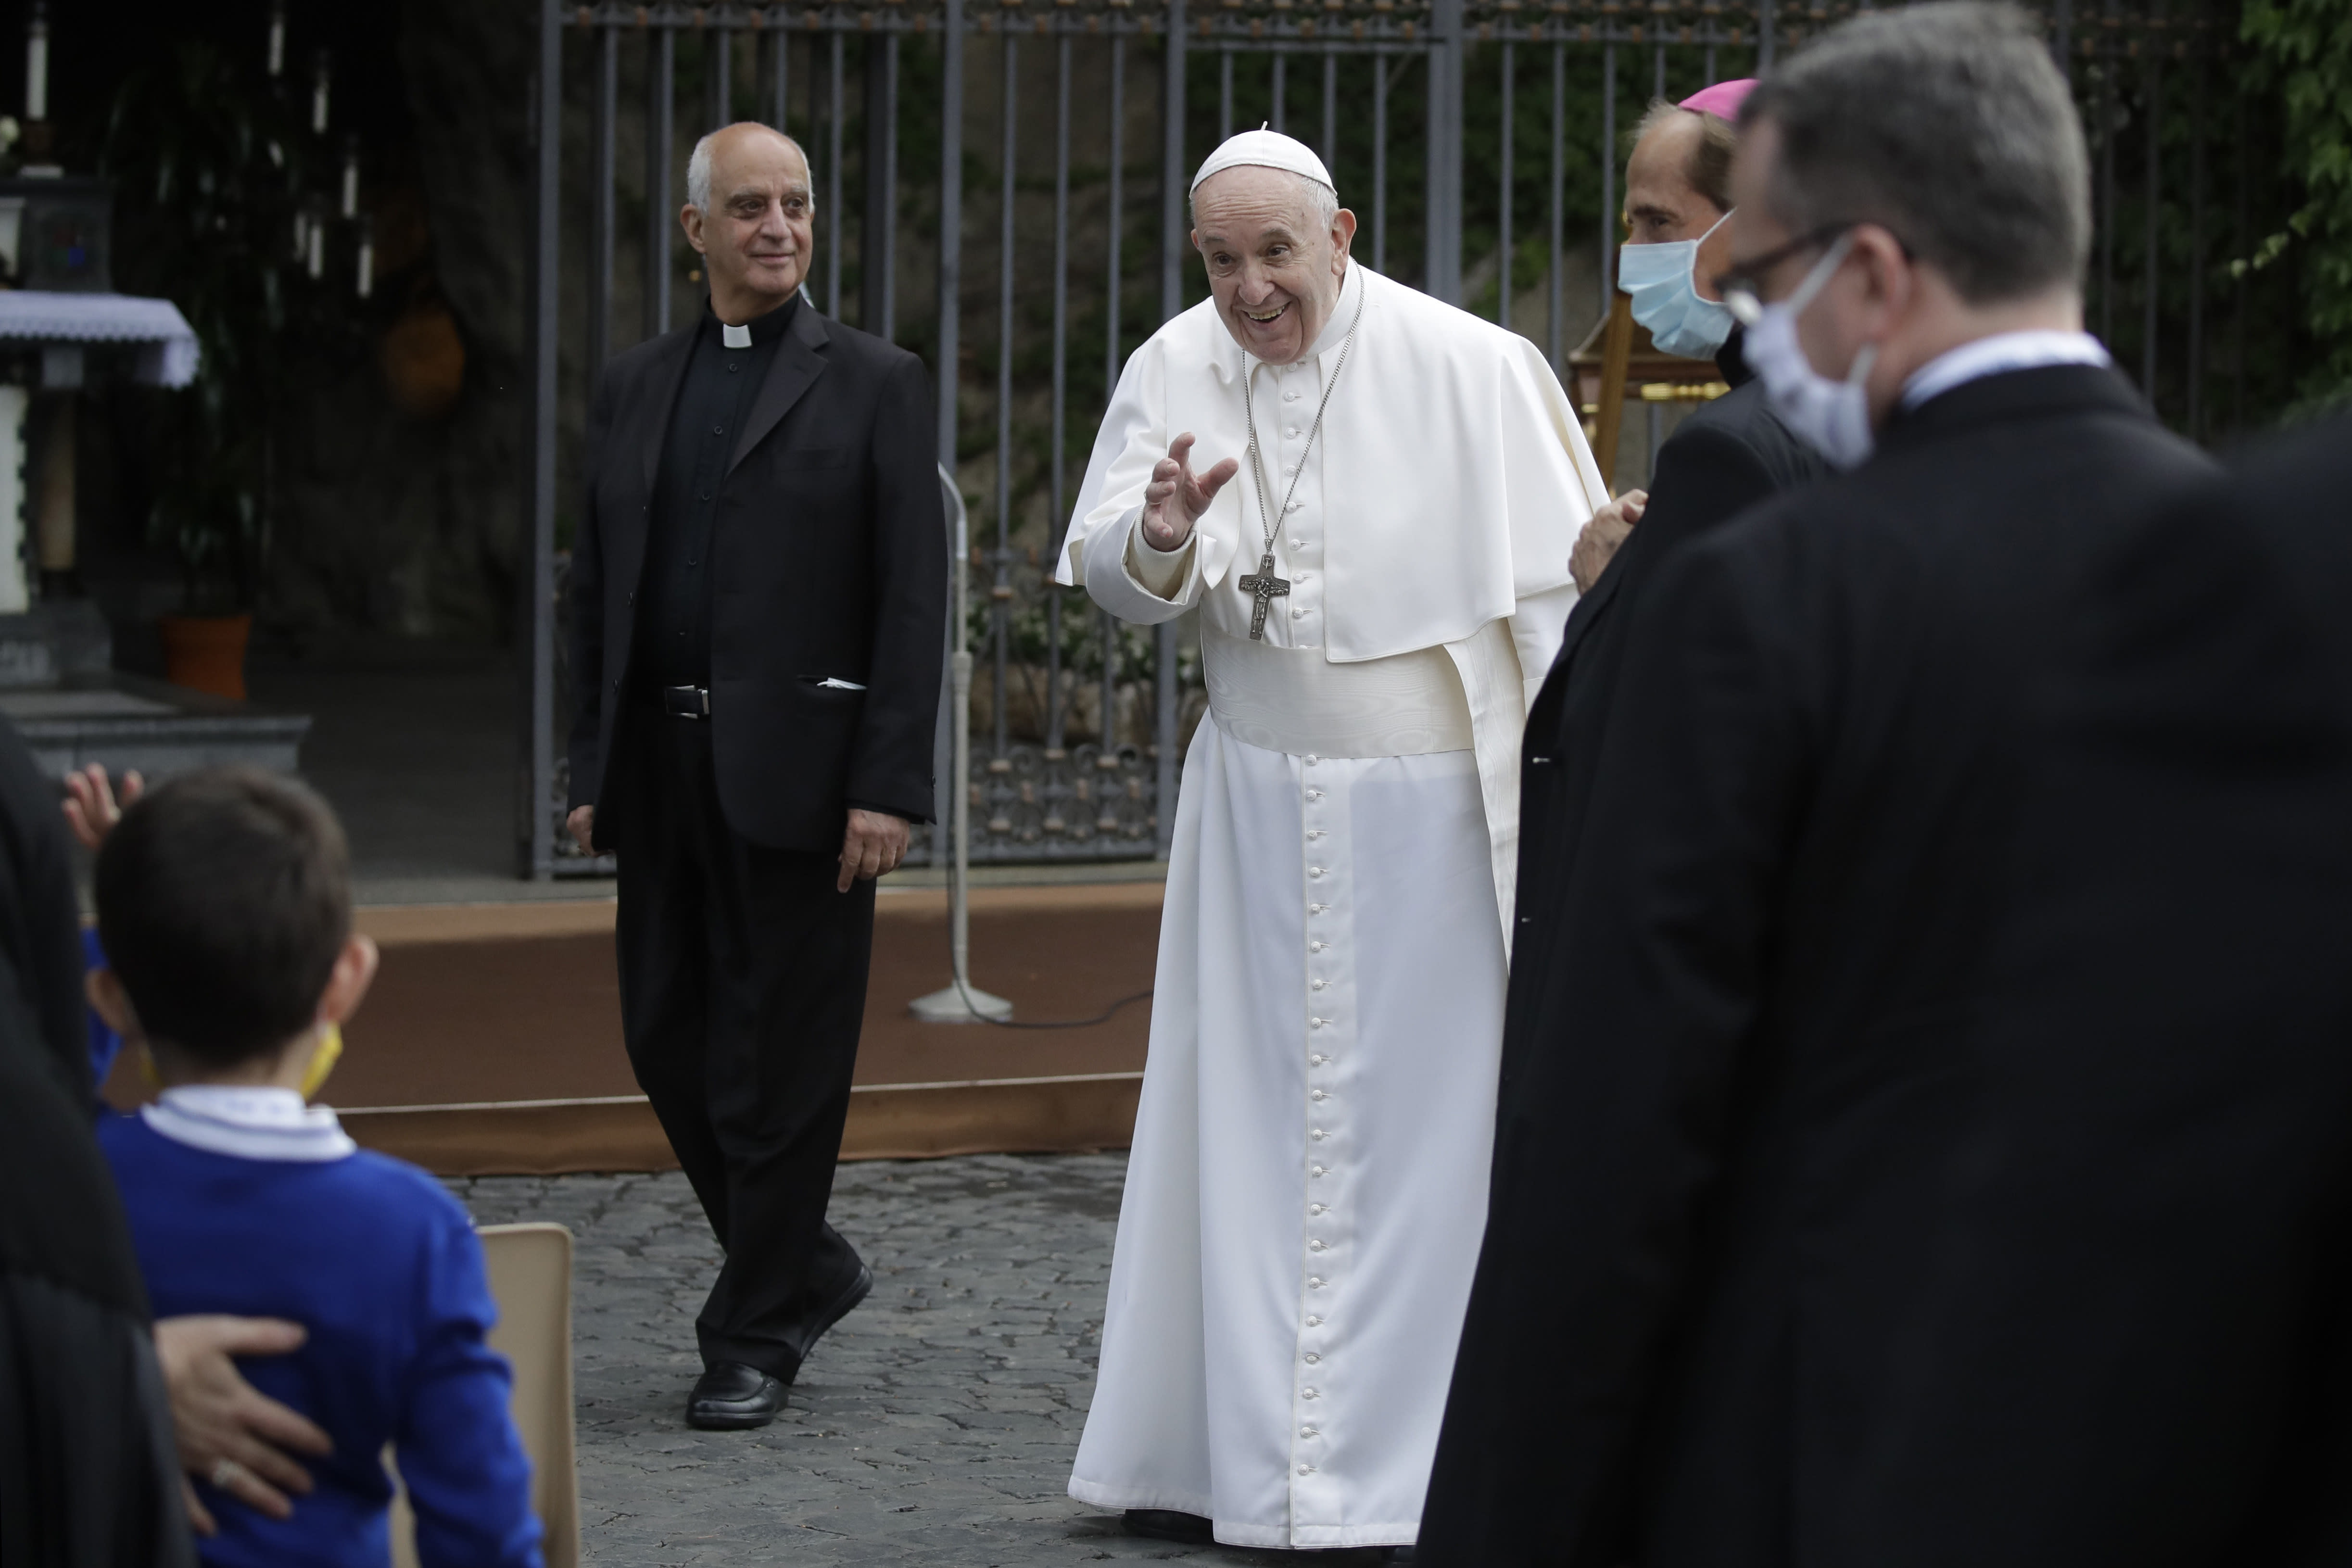 Pope Francis waves as he leaves after a rosary in Vatican gardens Saturday, May 30, 2020. Pope Francis is reciting a special prayer for the end of the coronavirus pandemic surrounded by a representative sampling of people on the front lines in his biggest post-lockdown gathering to date. (AP Photo/Alessandra Tarantino, pool)